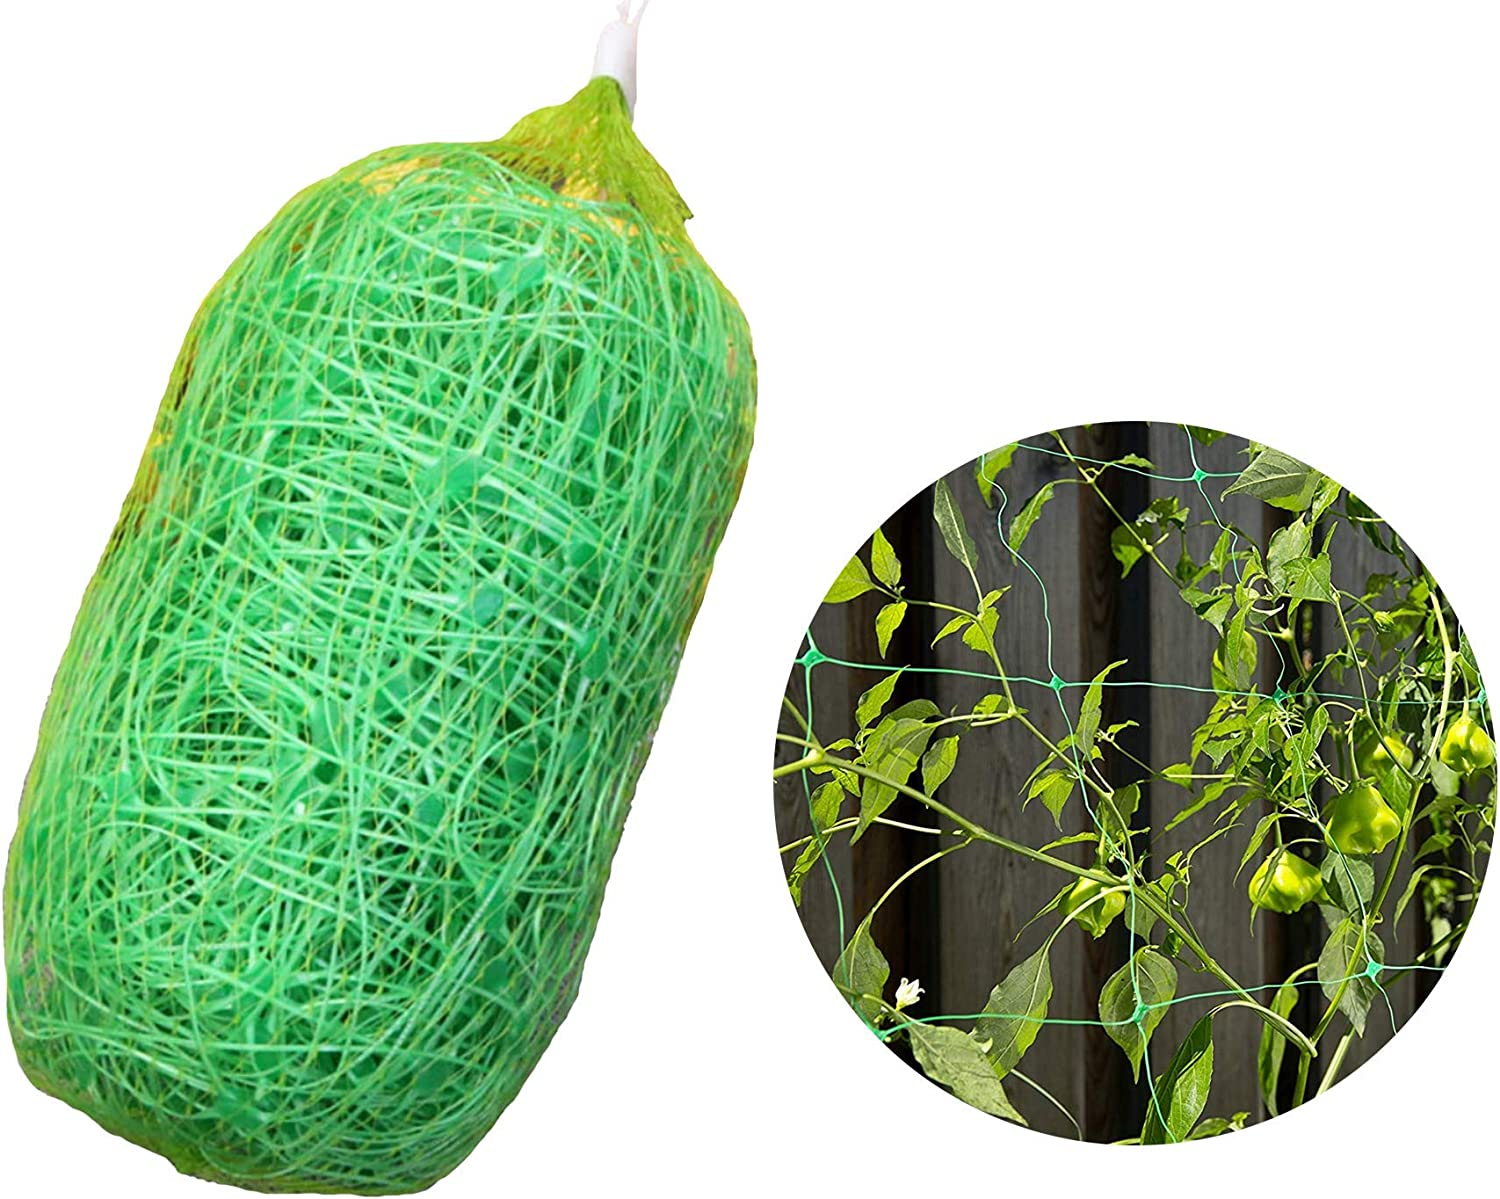 LAVZAN 6.5Ft x 32Ft Trellis Netting with 100 Pcs Nylon Cable Ties Plant Support for Climbing Plants, Vine and Veggie Trellis Net Climbing Frame Garden Fence Net for Flower Plant Fruit 2×10